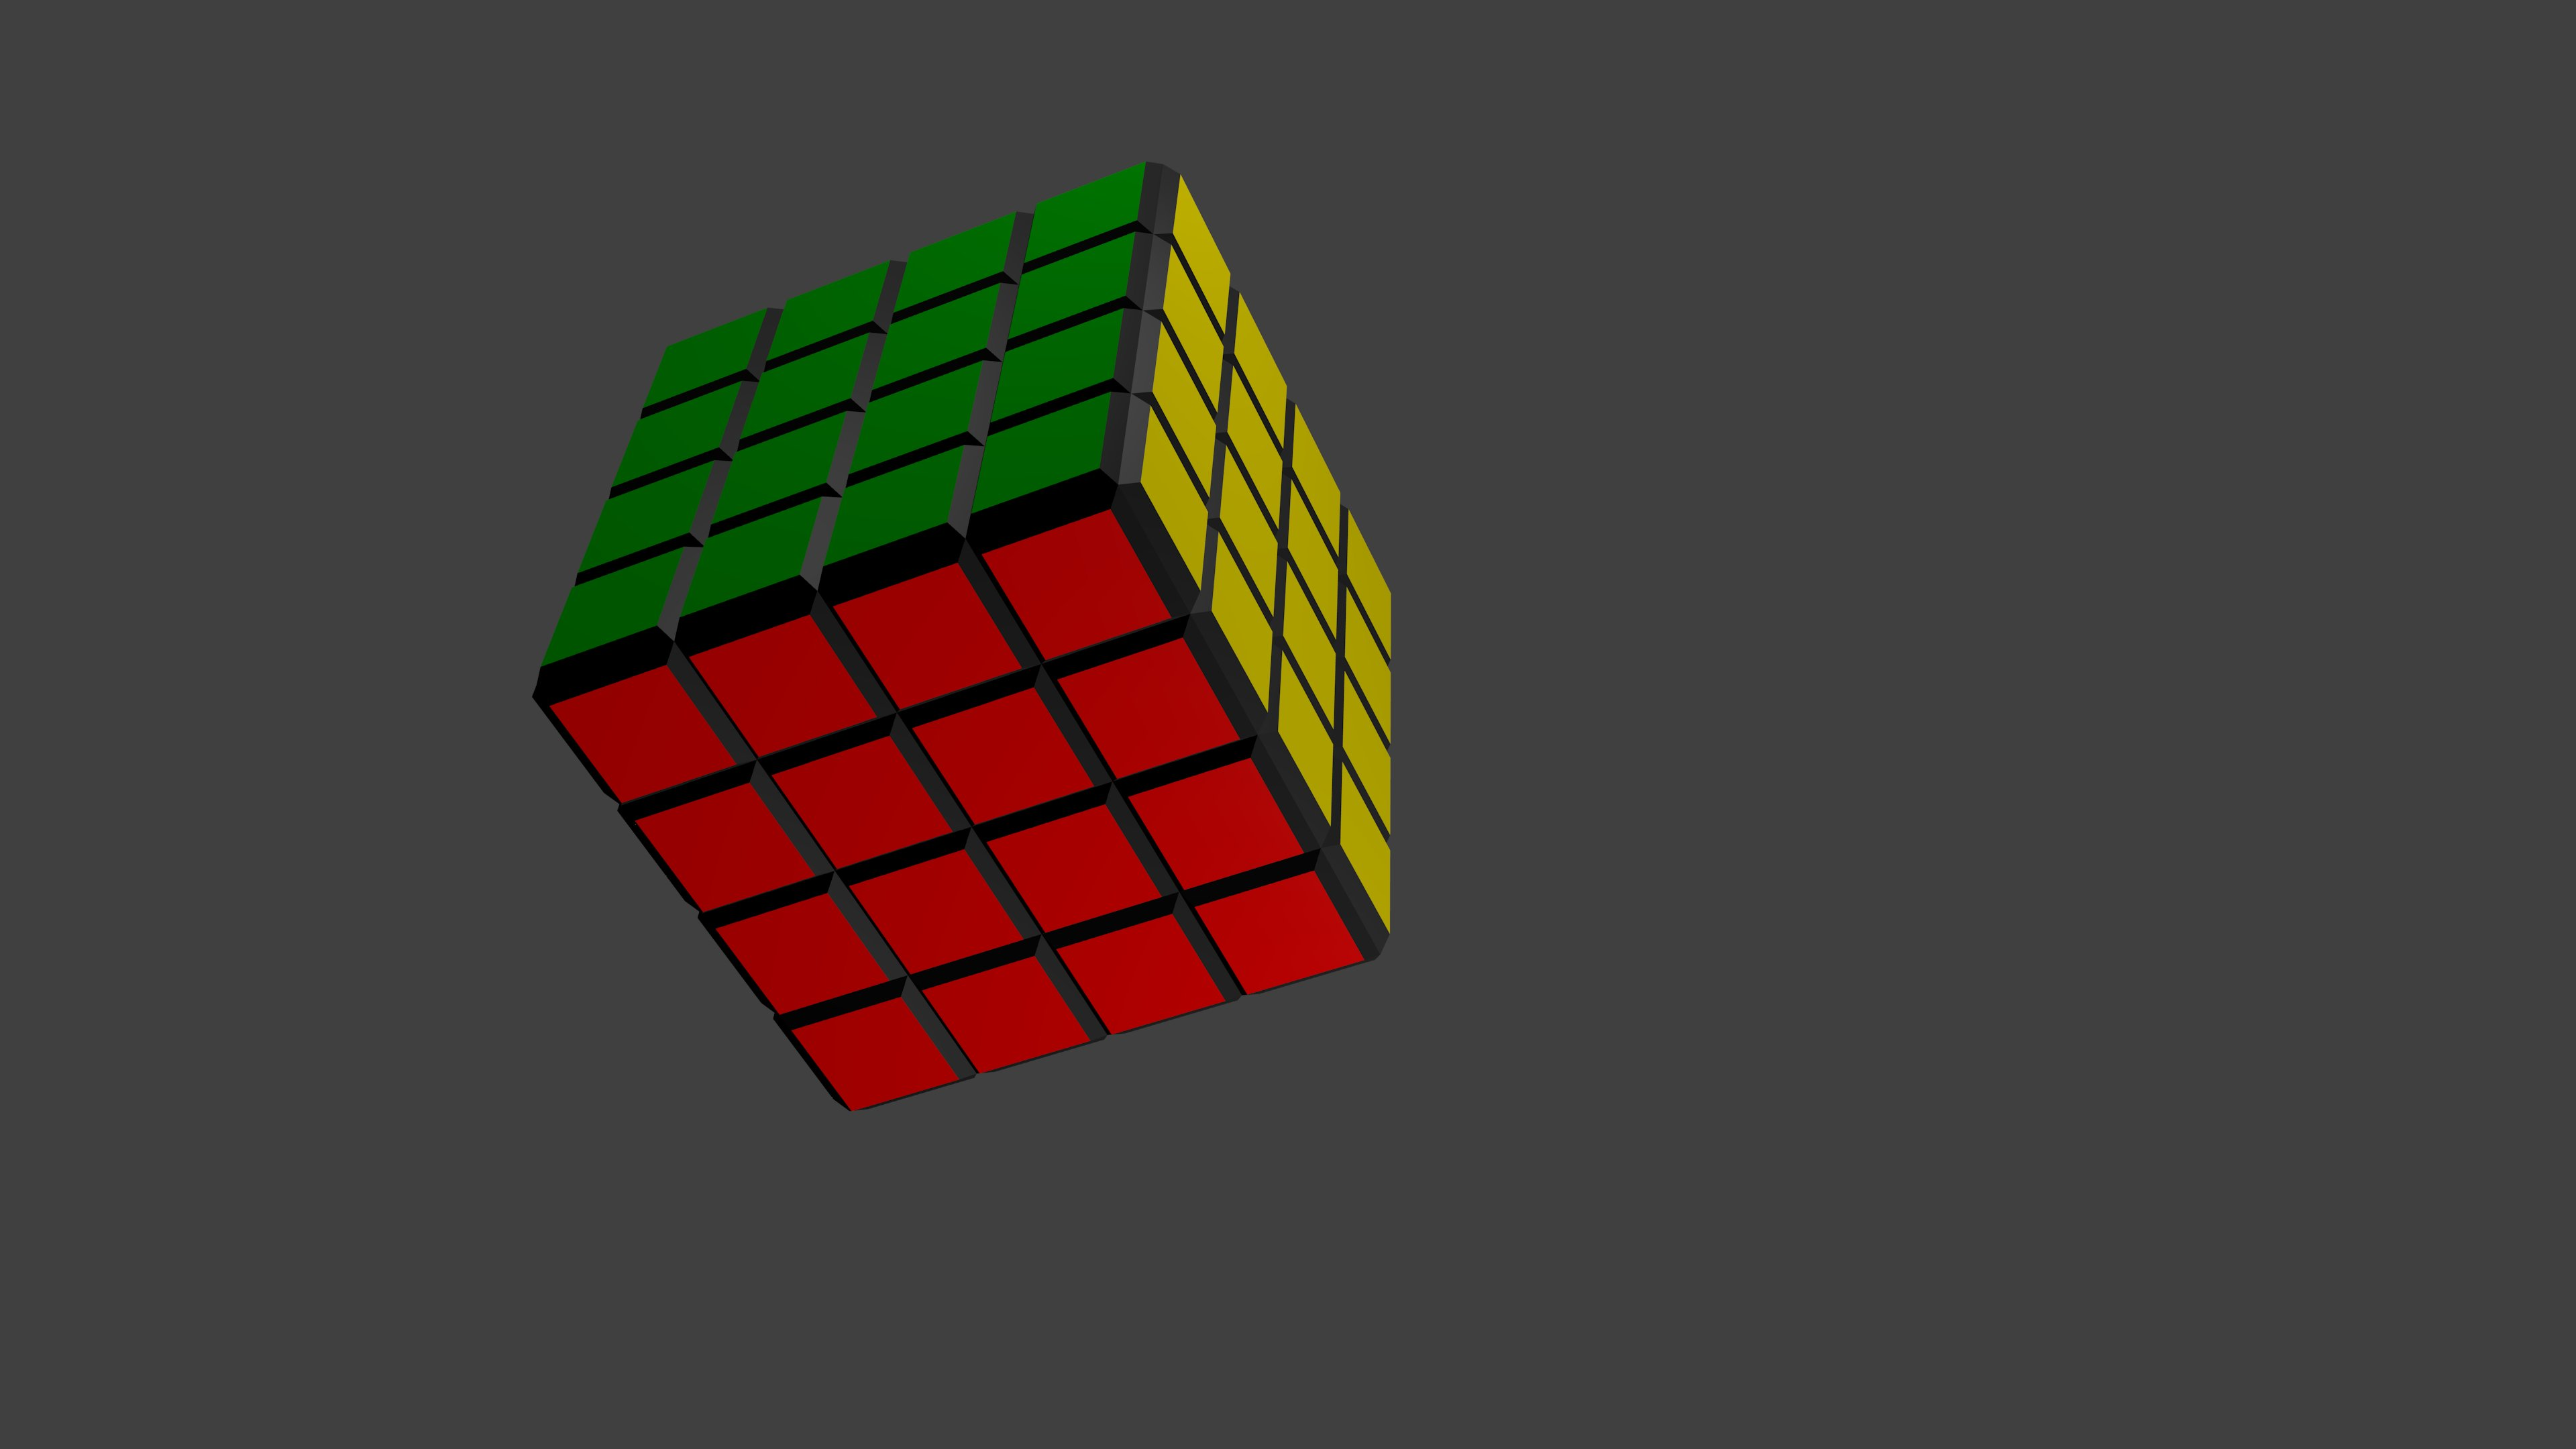 Cube 4k Wallpapers For Your Desktop Or Mobile Screen Free